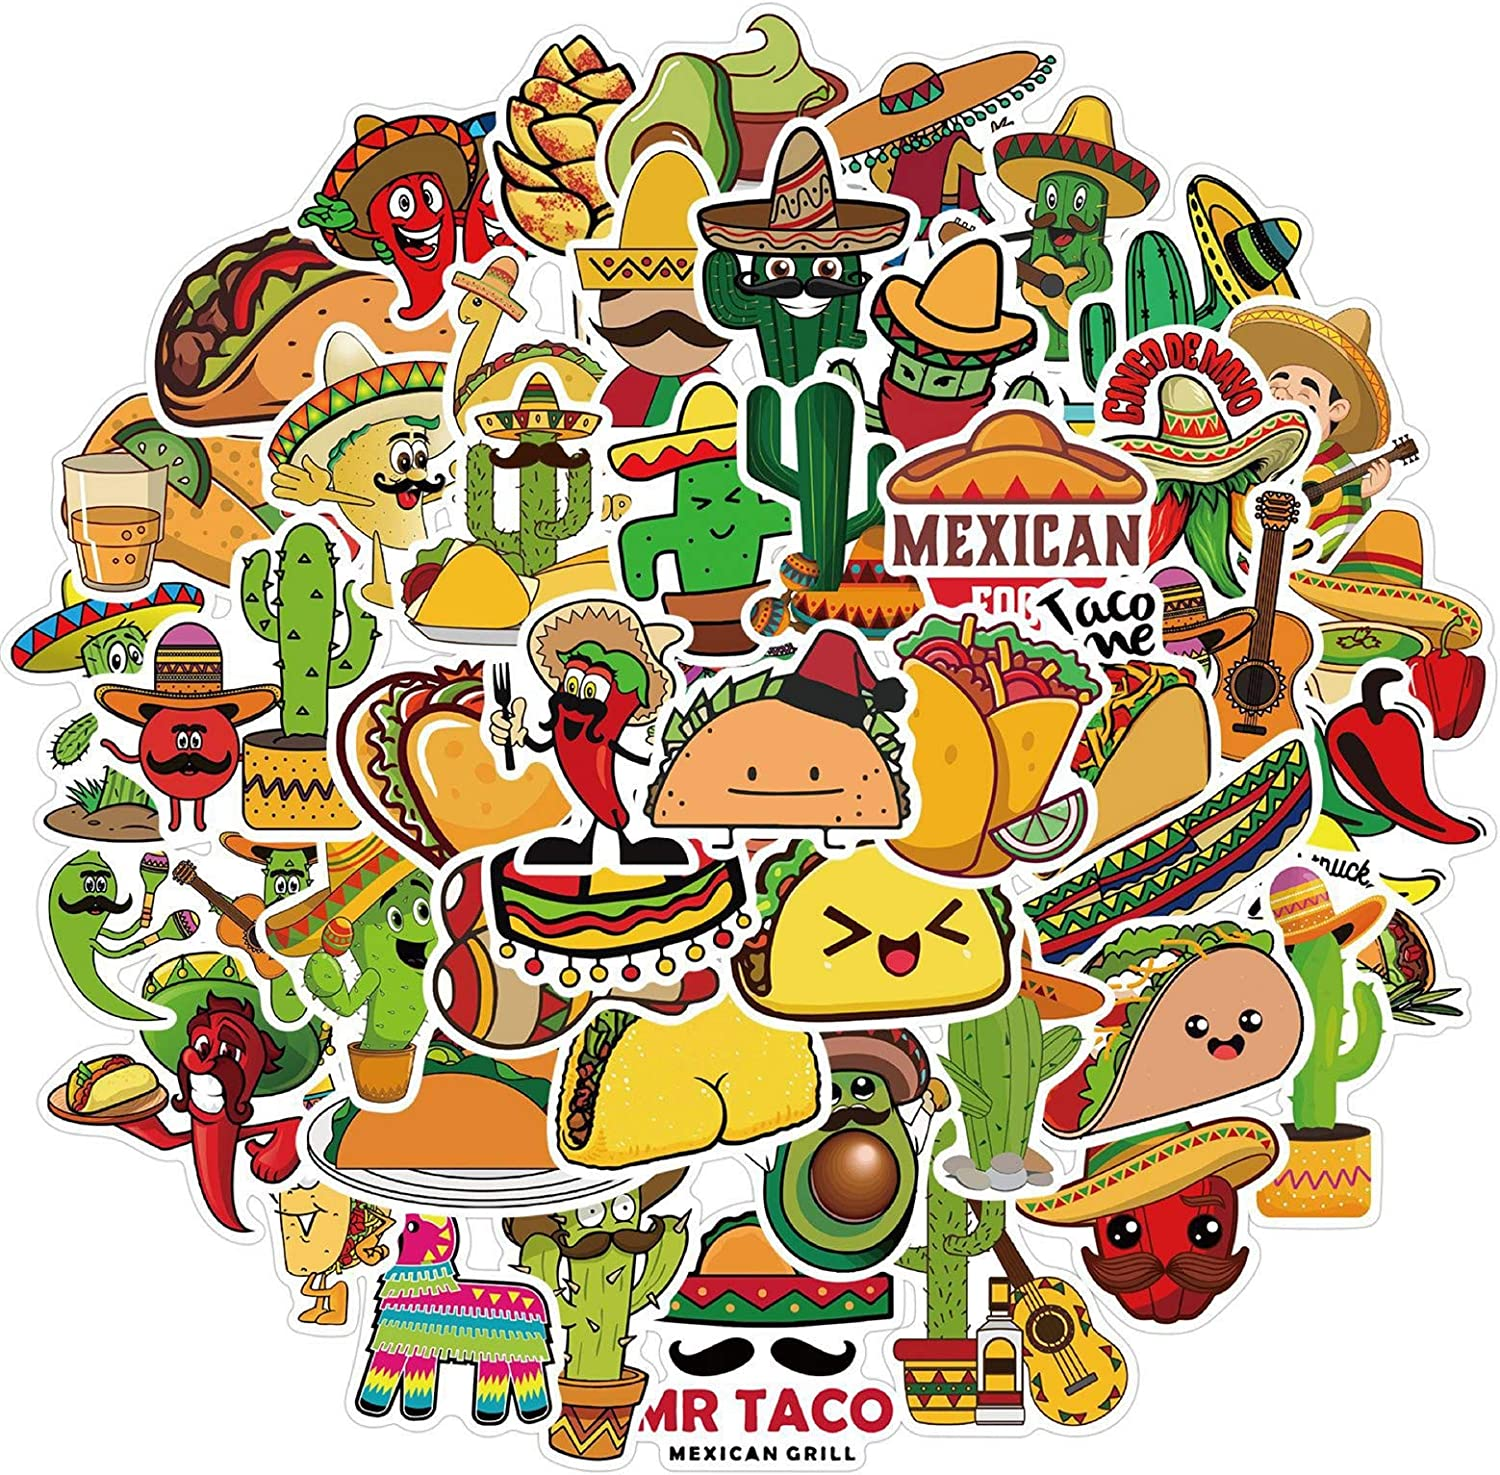 Mexican Food Stickers Taco Stickers 50pcs Laptop Waterproof Vinyl Stickers for Boys Teens (Food)